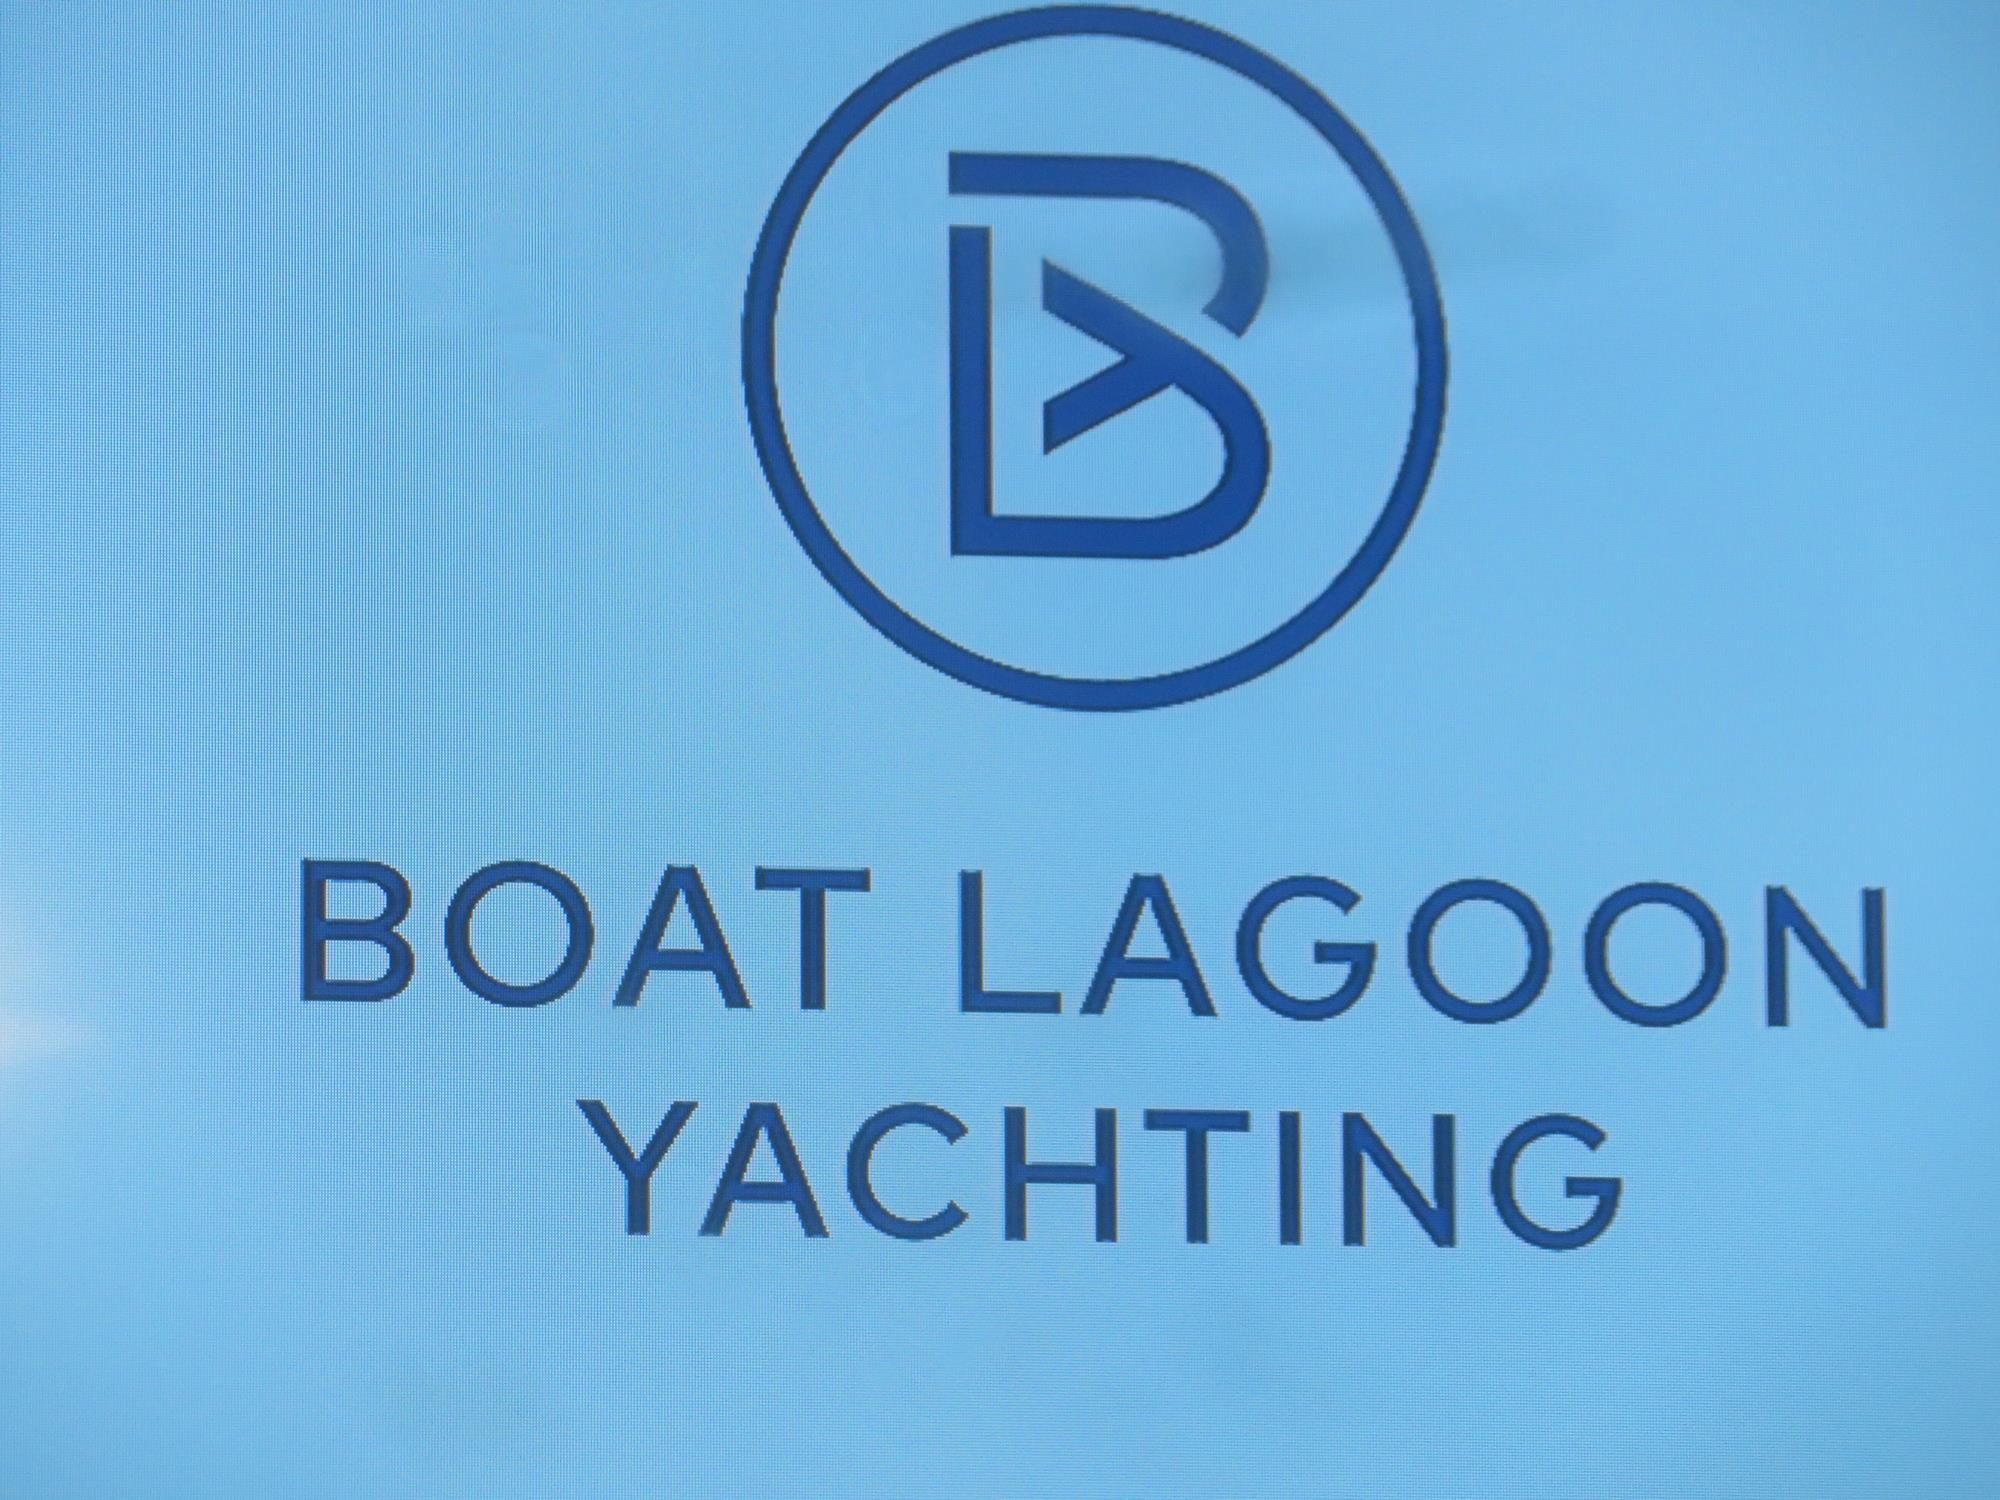 Boat Lagoon Yachting Expands News International Boat Industry